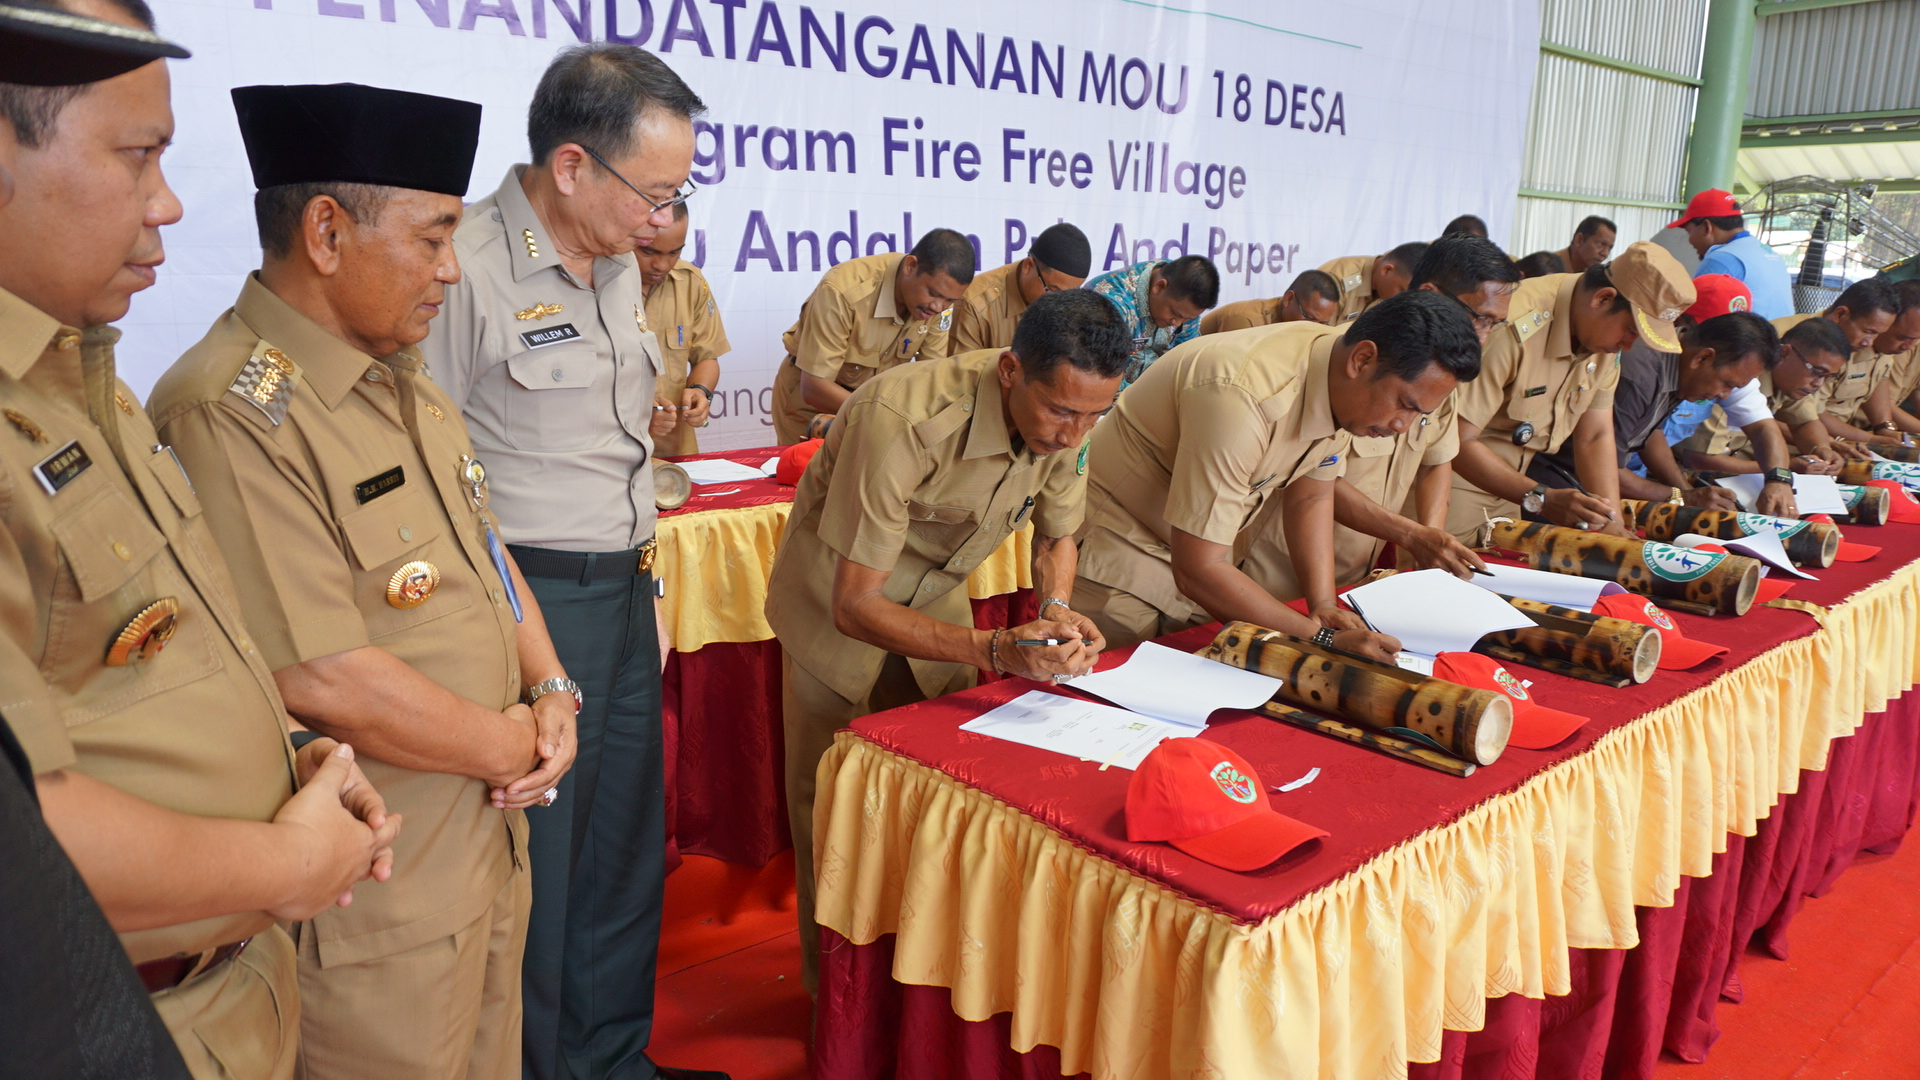 3rd Edition of APRIL's Fire Free Village Programme